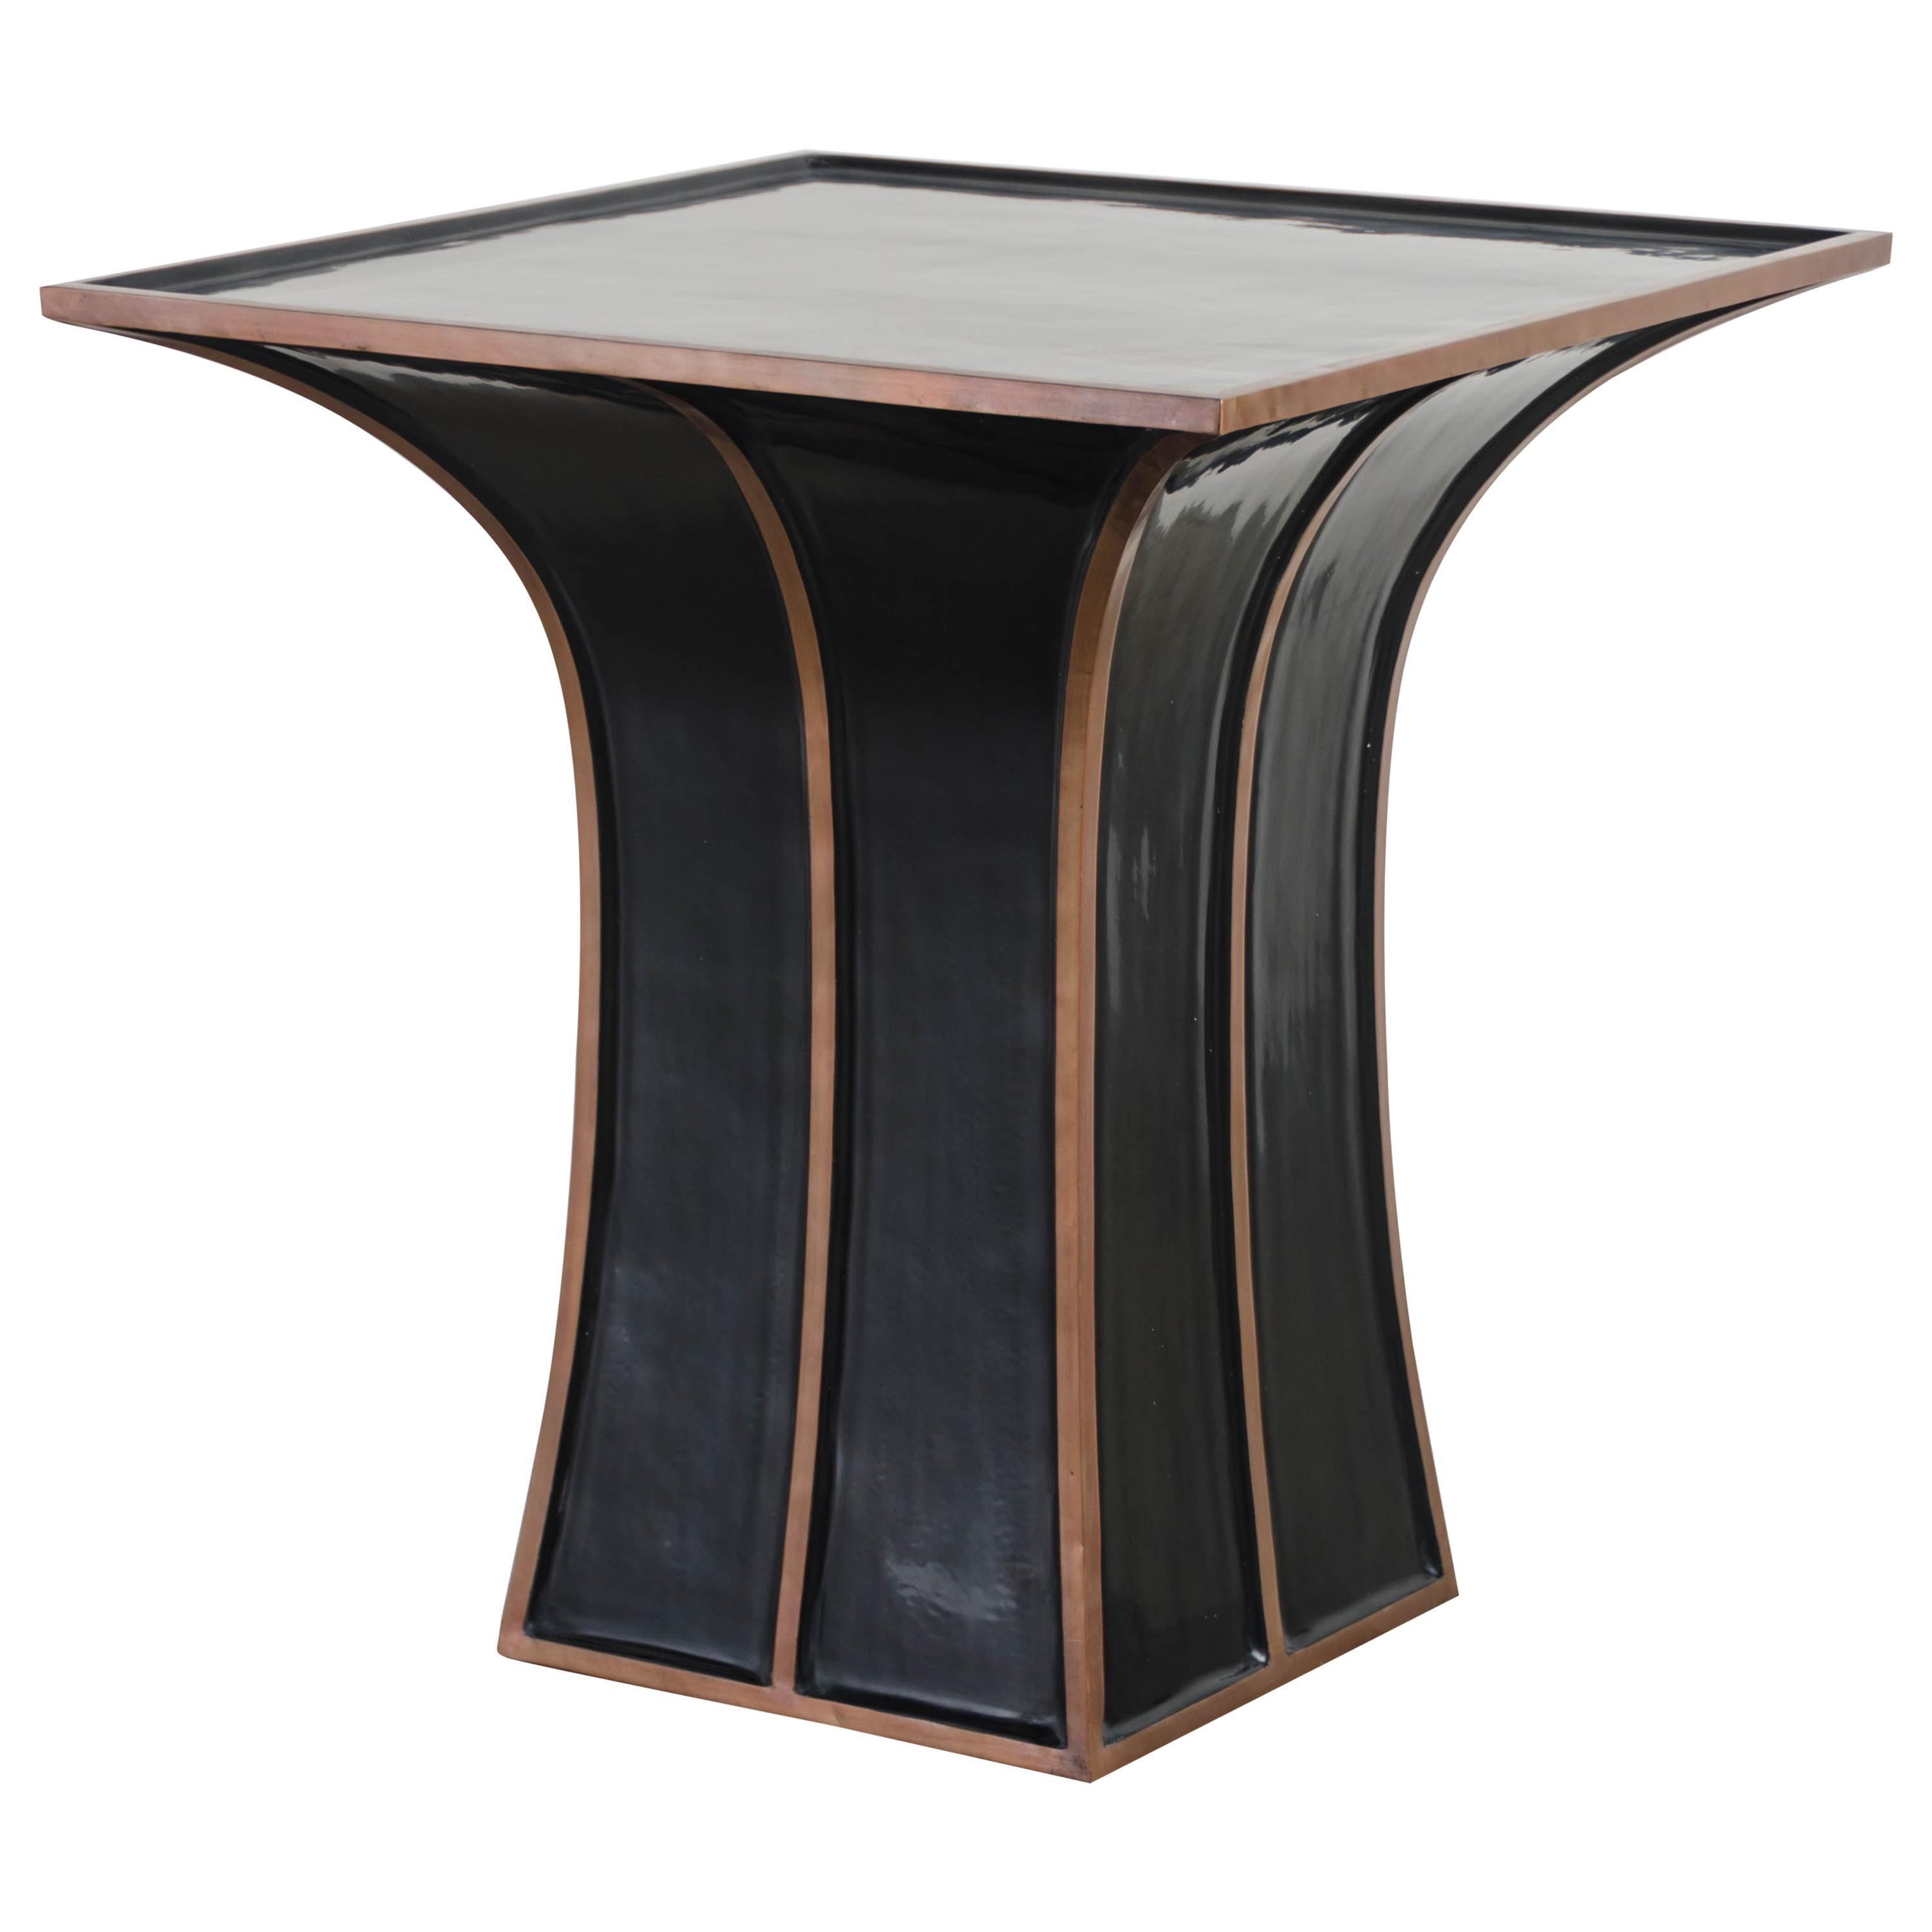 Fang Gu Table, Black Lacquer with Copper by Robert Kuo, Hand Repousse, Limited